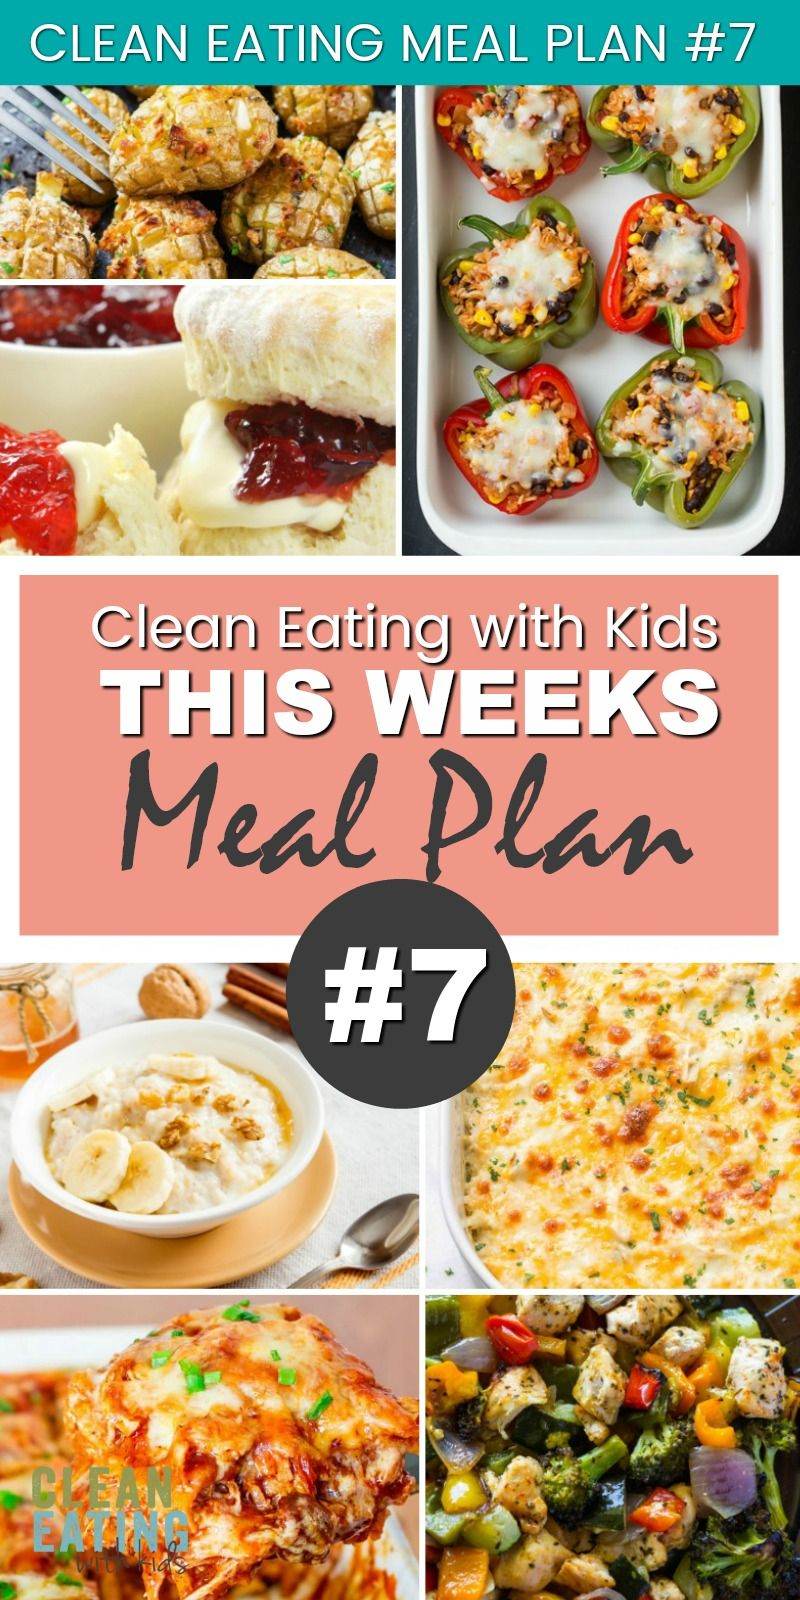 Clean Eating Family Meal Plan #7 images